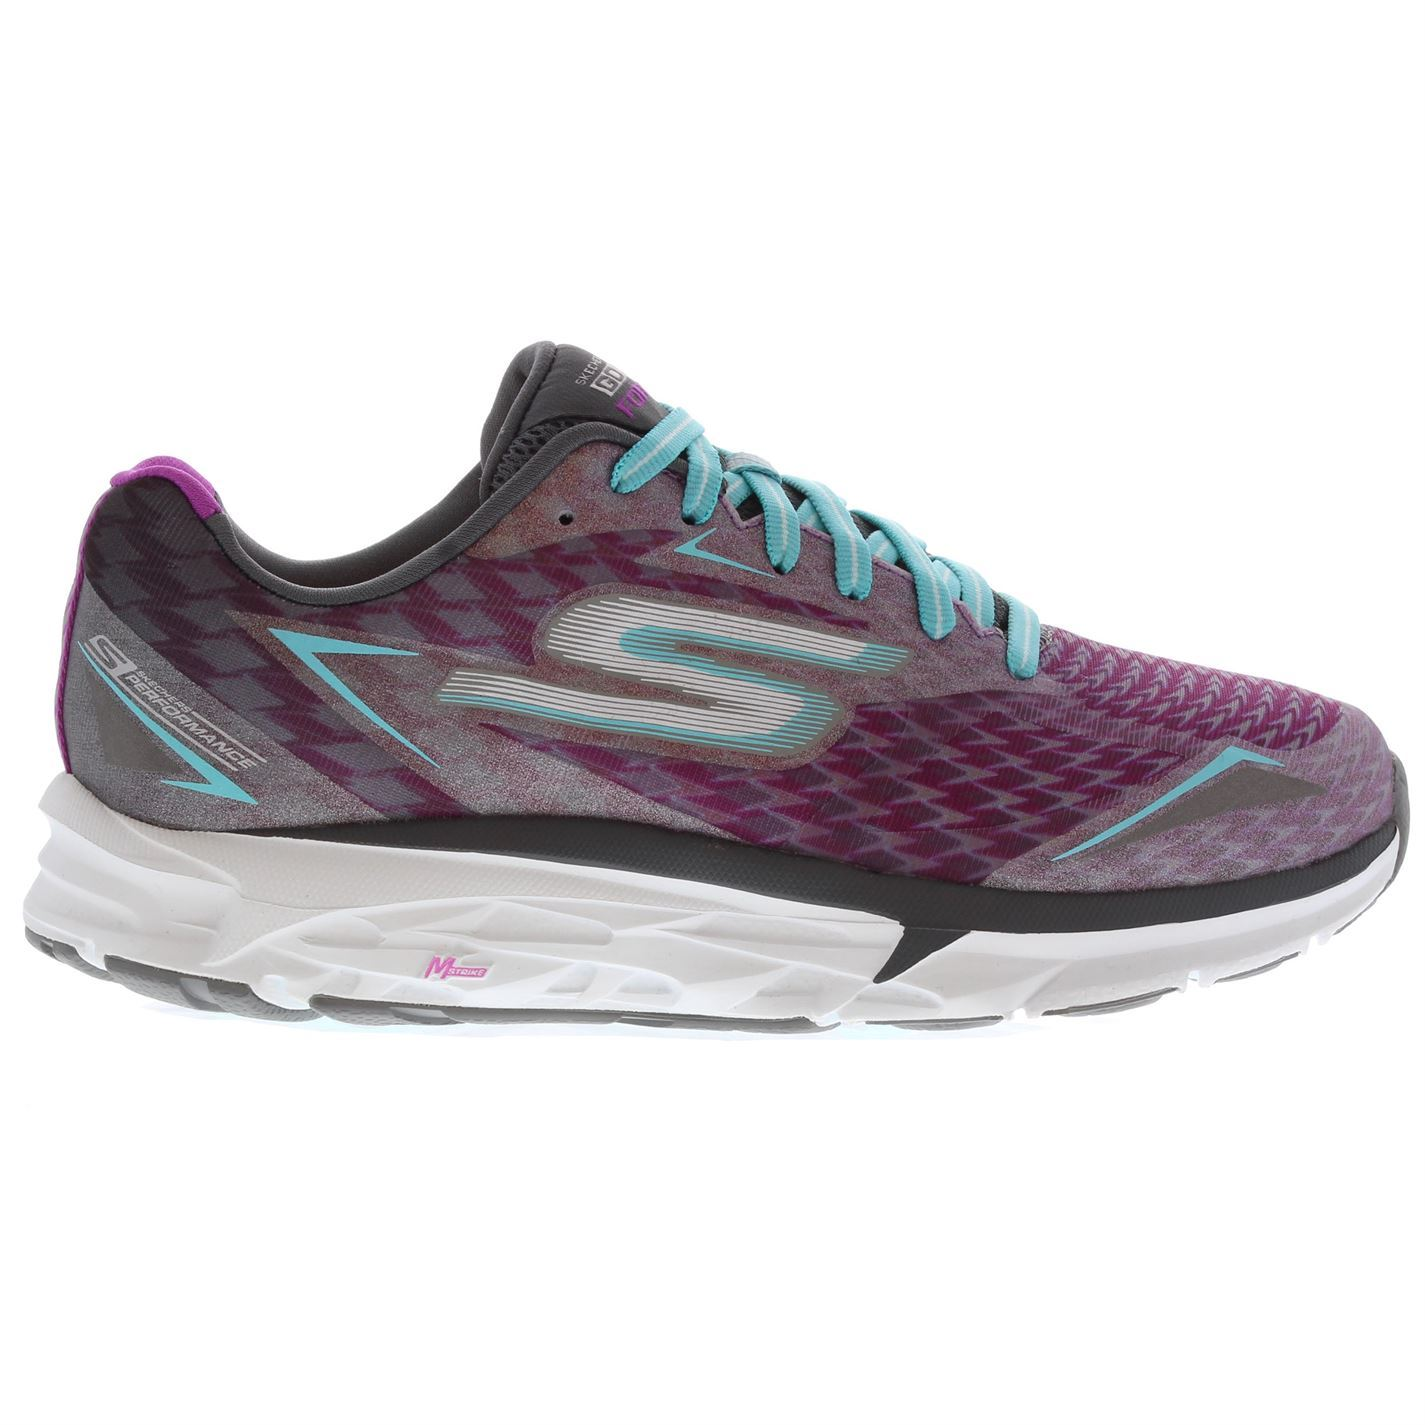 8f68c267a52d Skechers Go Run Forza 2 Running Shoes Trail Womens